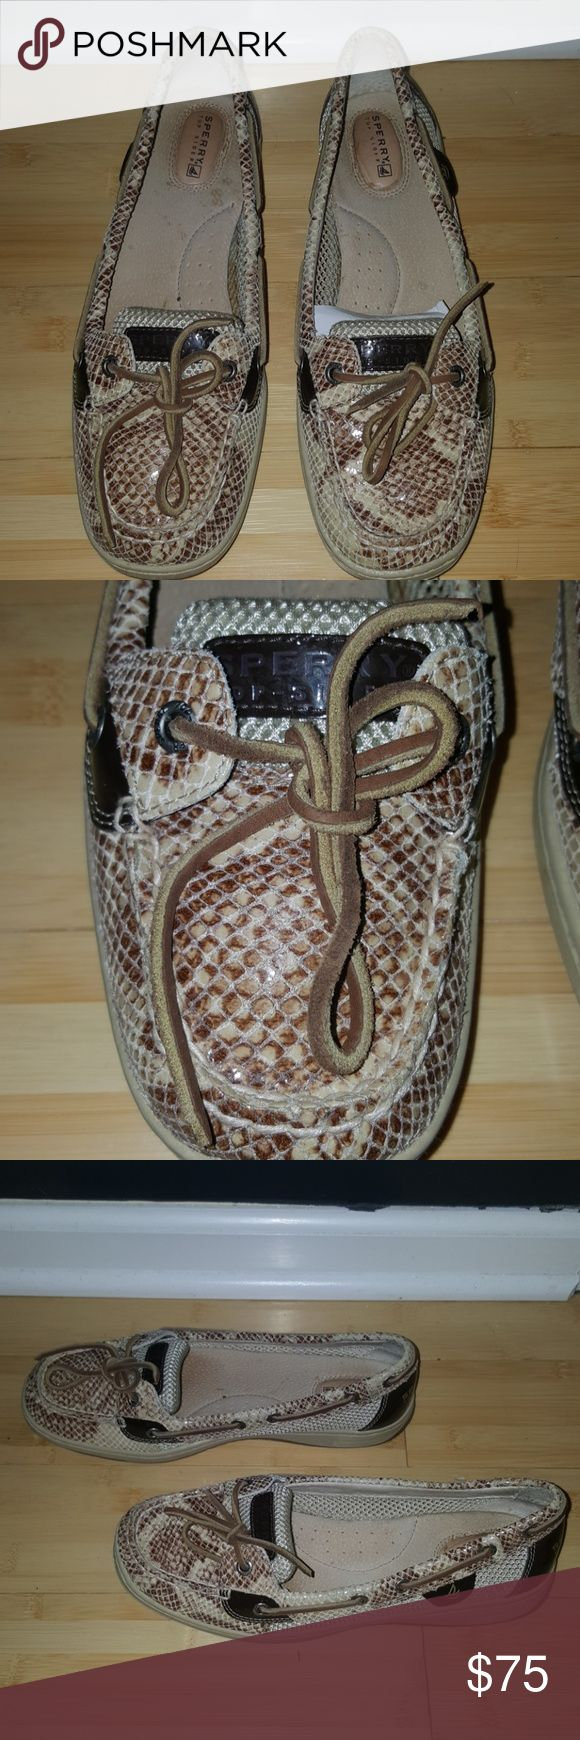 Sperry women's angelfish Brown python shoes Sperrys size 10, only worn one  time. Great condition! Sperry Top-Sider Shoes Flats & Loafers